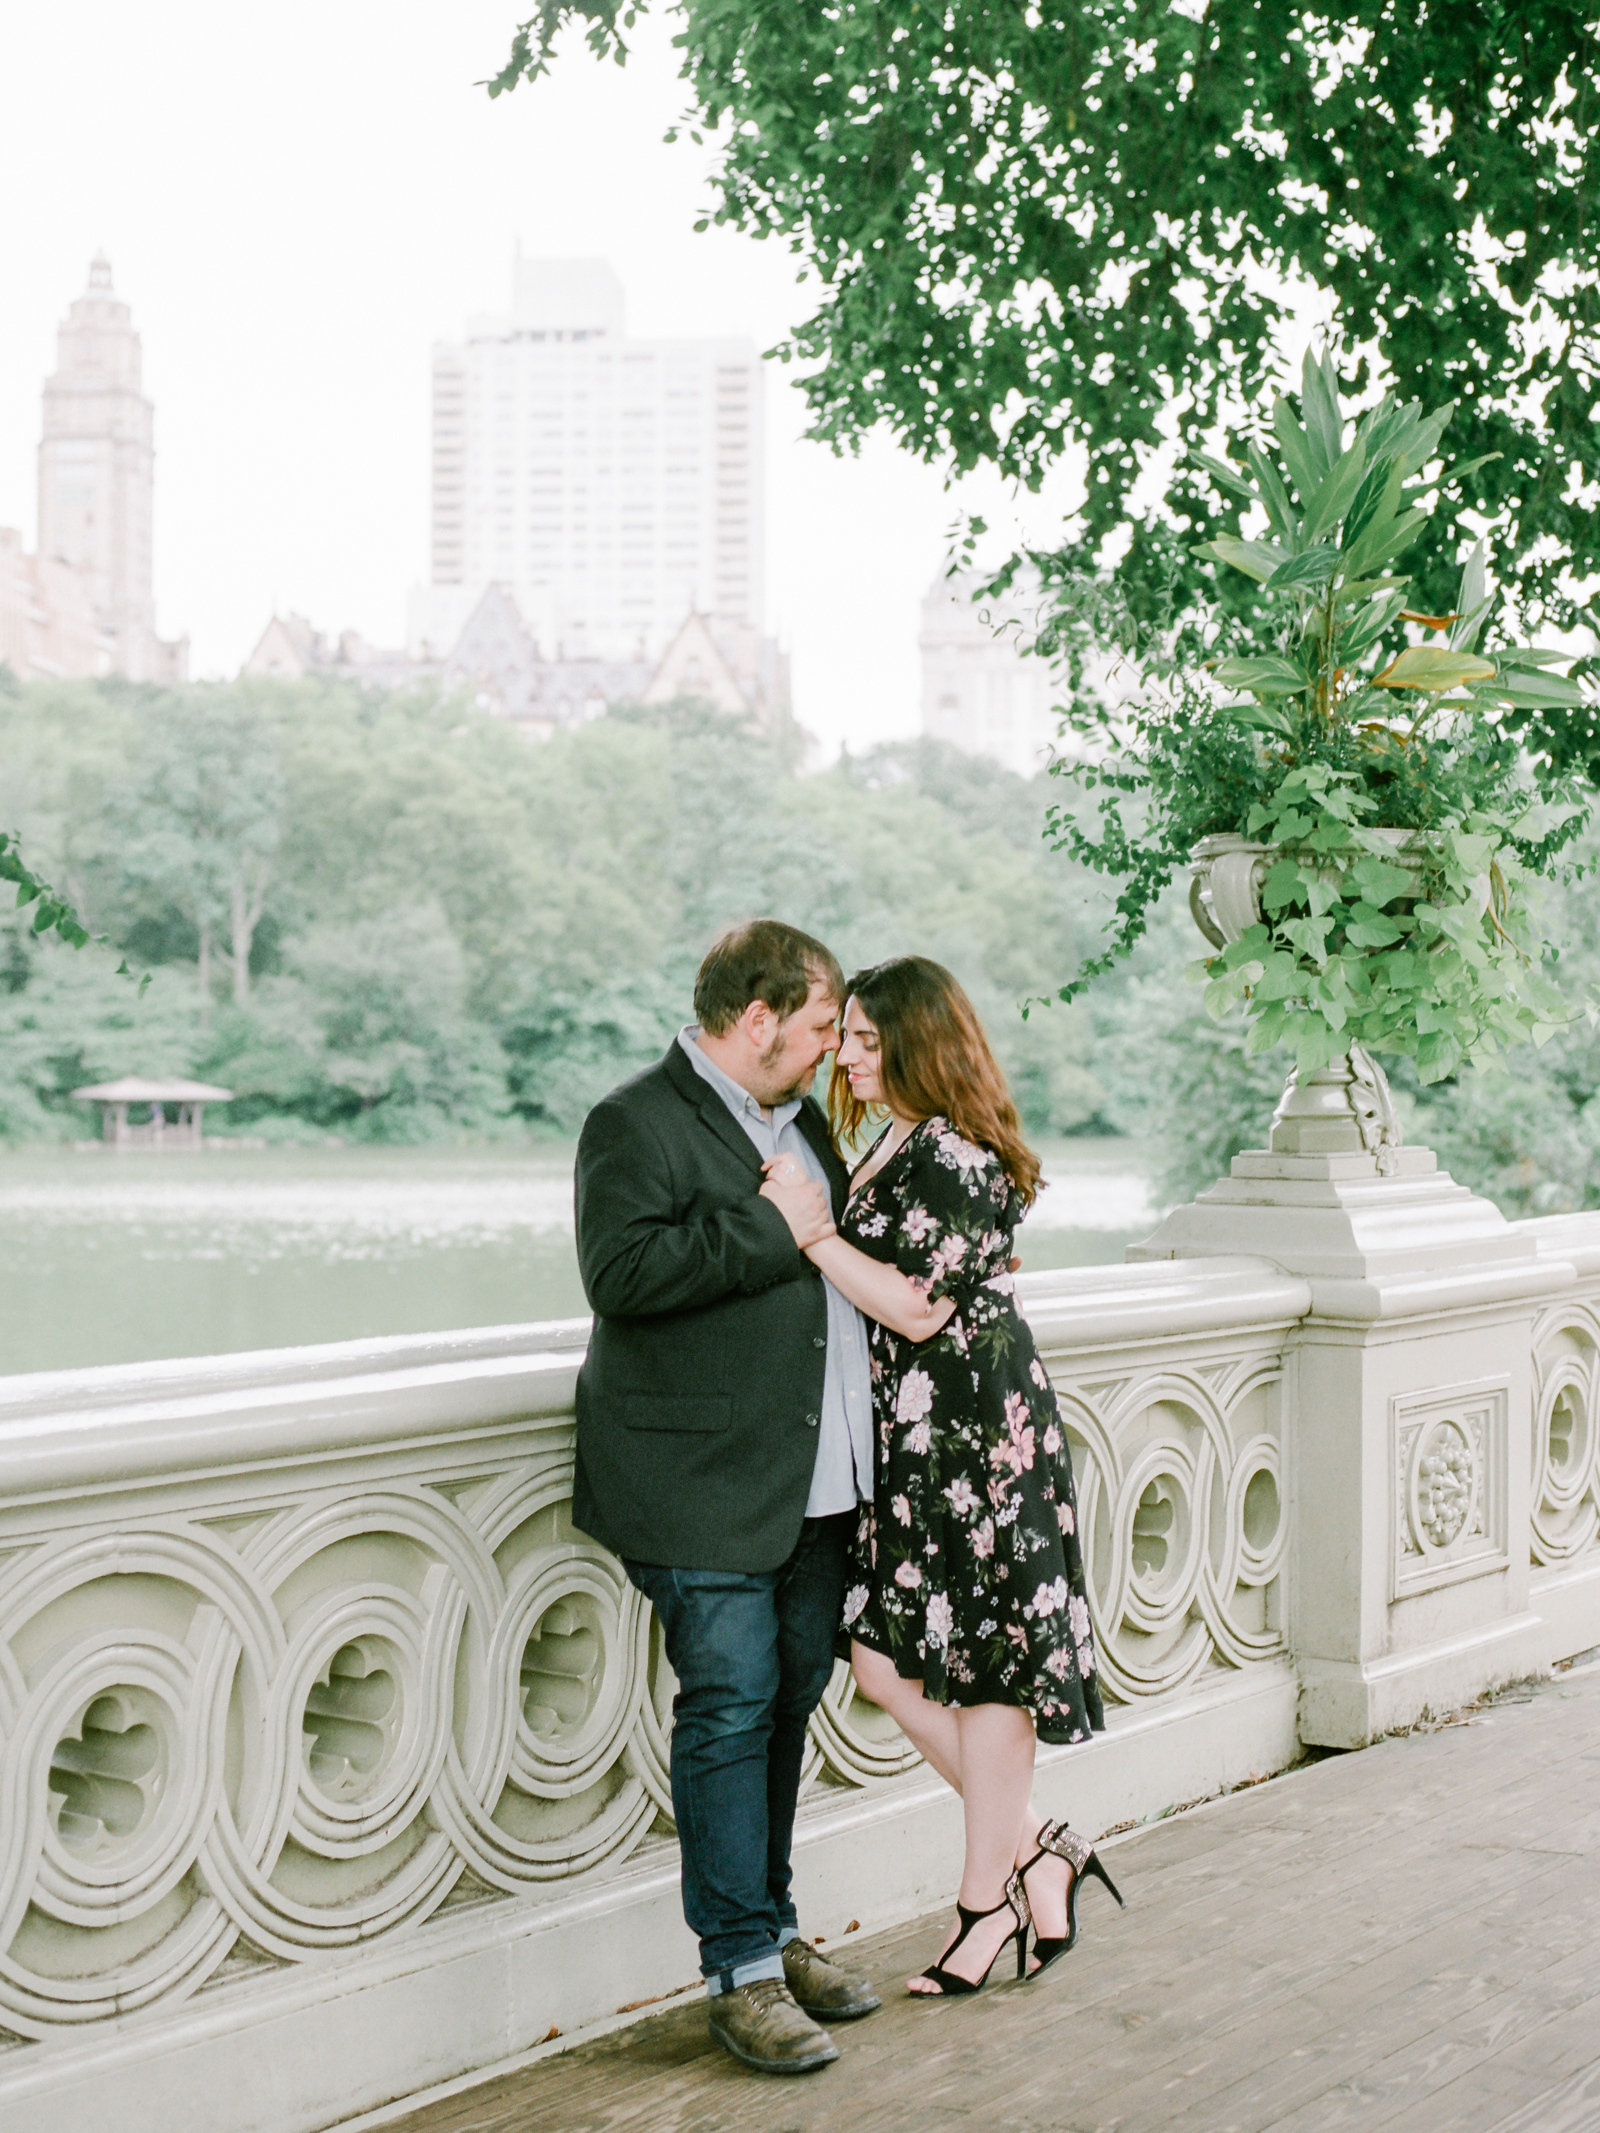 Central-Park-NYC-Engagement-Session-film-photography-24.jpg